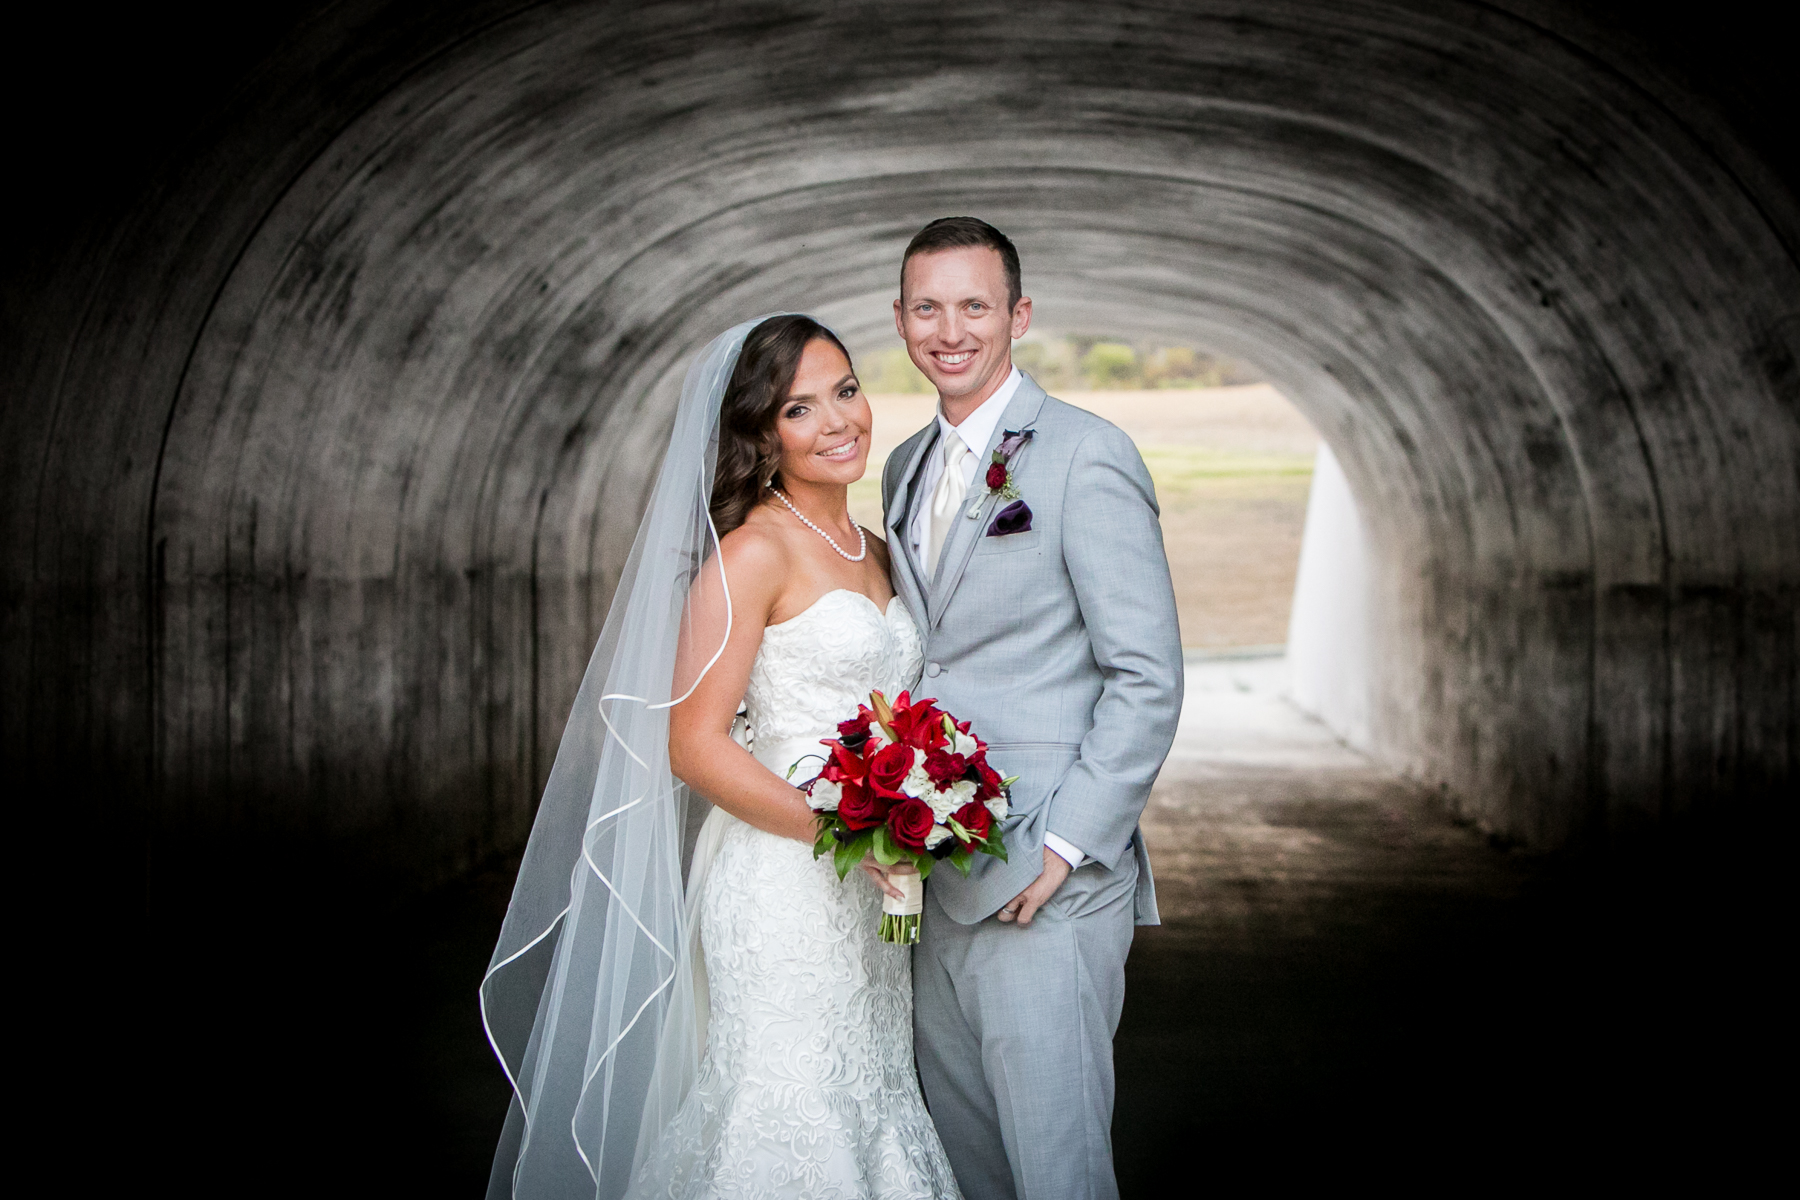 portrait under tunnel of bride and groom at wedding at the retreat photos